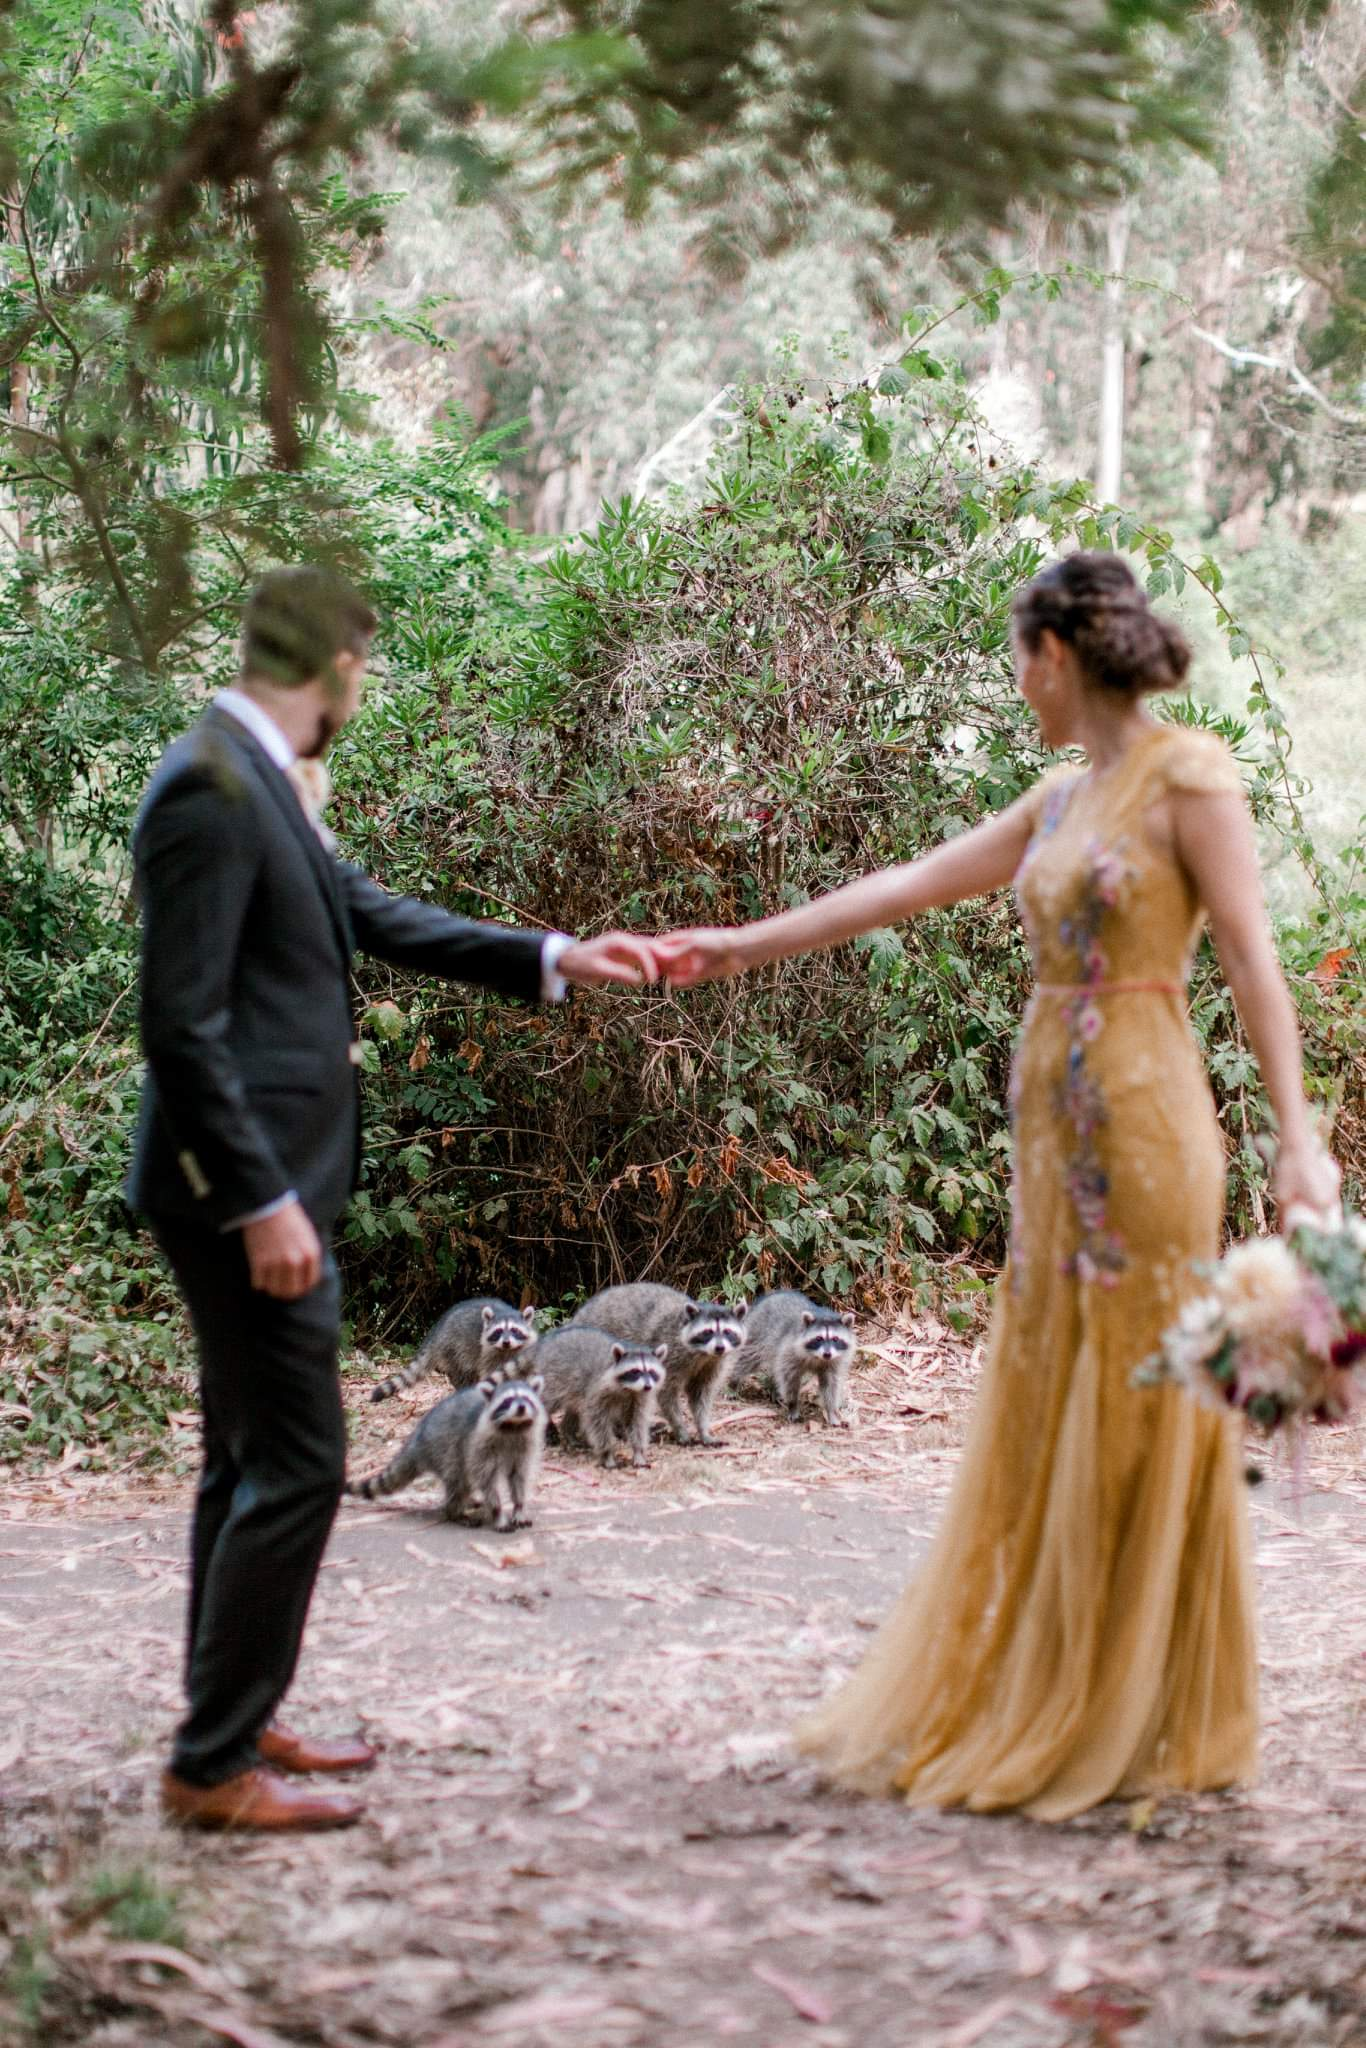 They got photobombed by raccoons while their wedding photo shoot